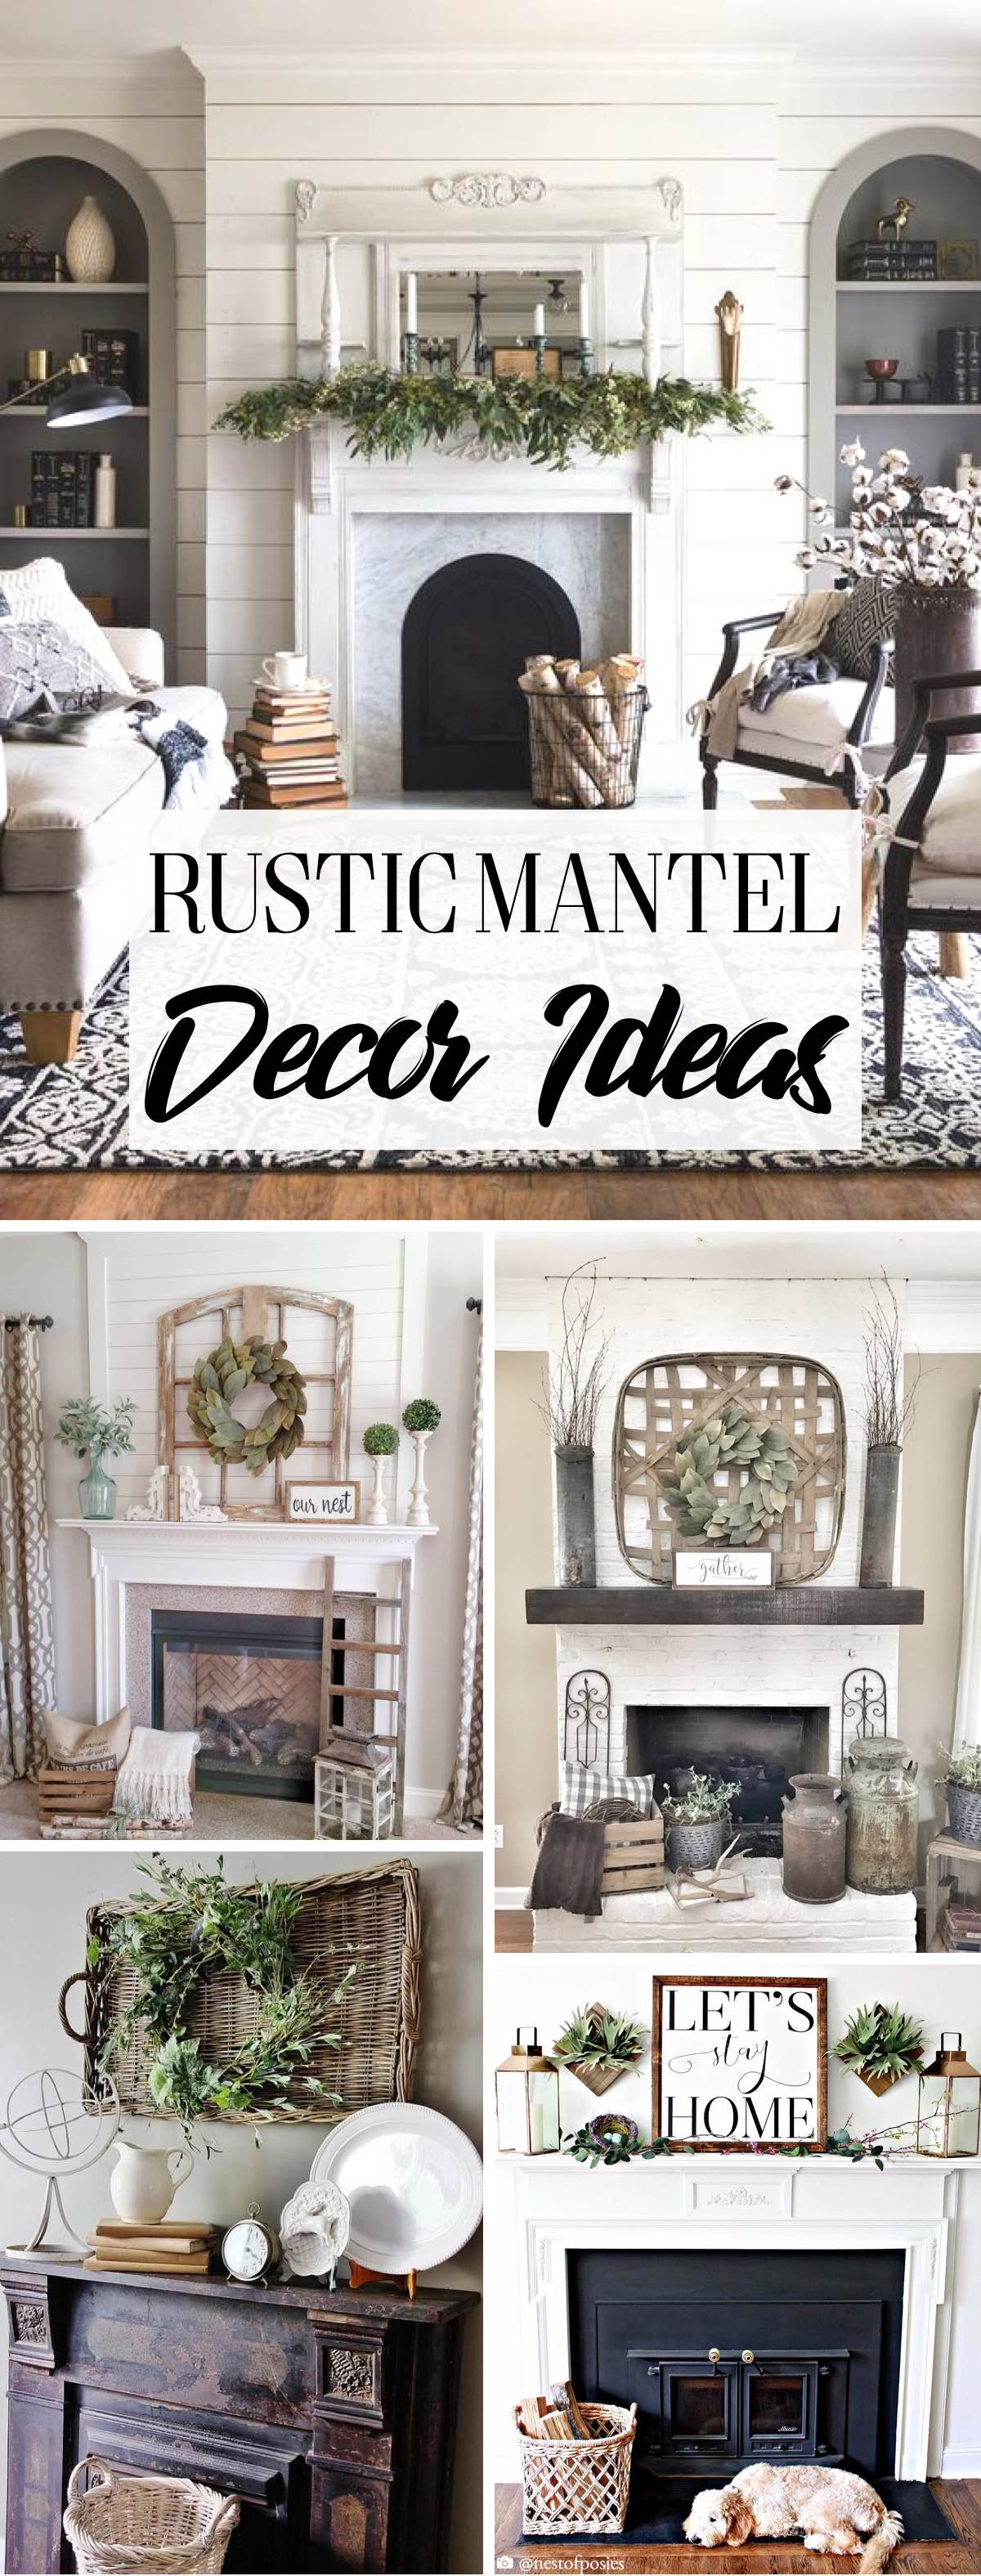 Farmhouse Rustic Fireplace Mantel Decor 14 Glorious Rustic Mantel Decor Ideas You Ll Fall Head Over Heels